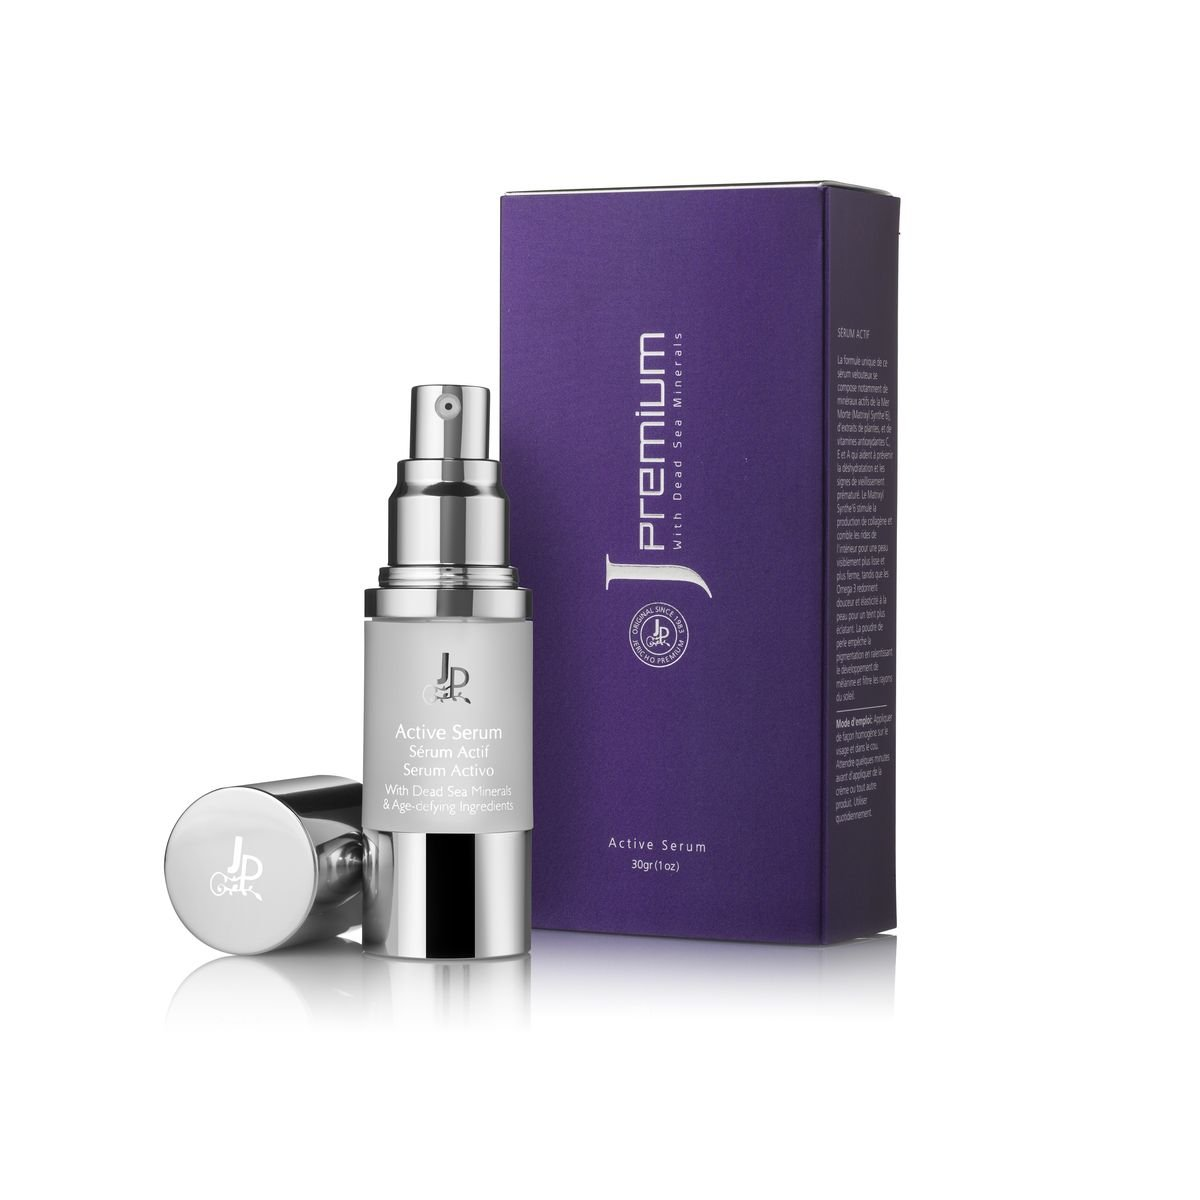 Amazon.com : Premium Active Serum by Jericho for energetic glowing look, Enriched with Dead Sea Minerals, Pure Honey, Plant Extracts, Vitamins And Powerful ...